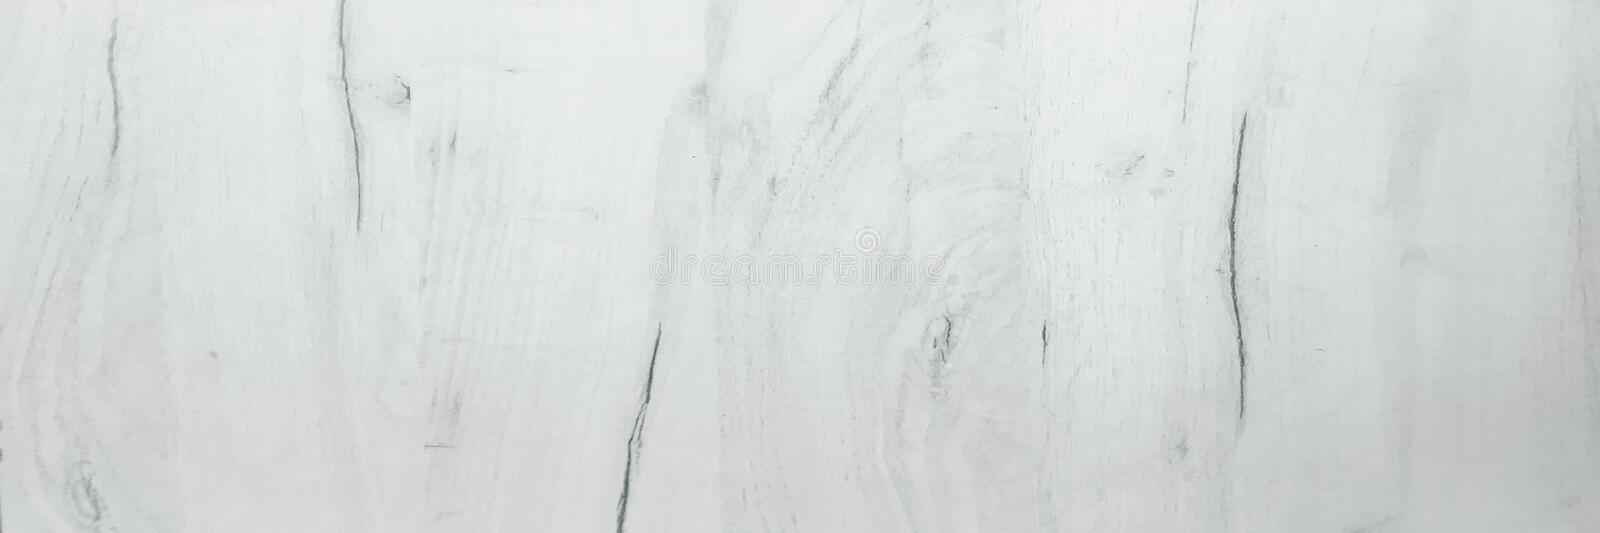 White washed wood texture. Light wood texture background royalty free stock photos